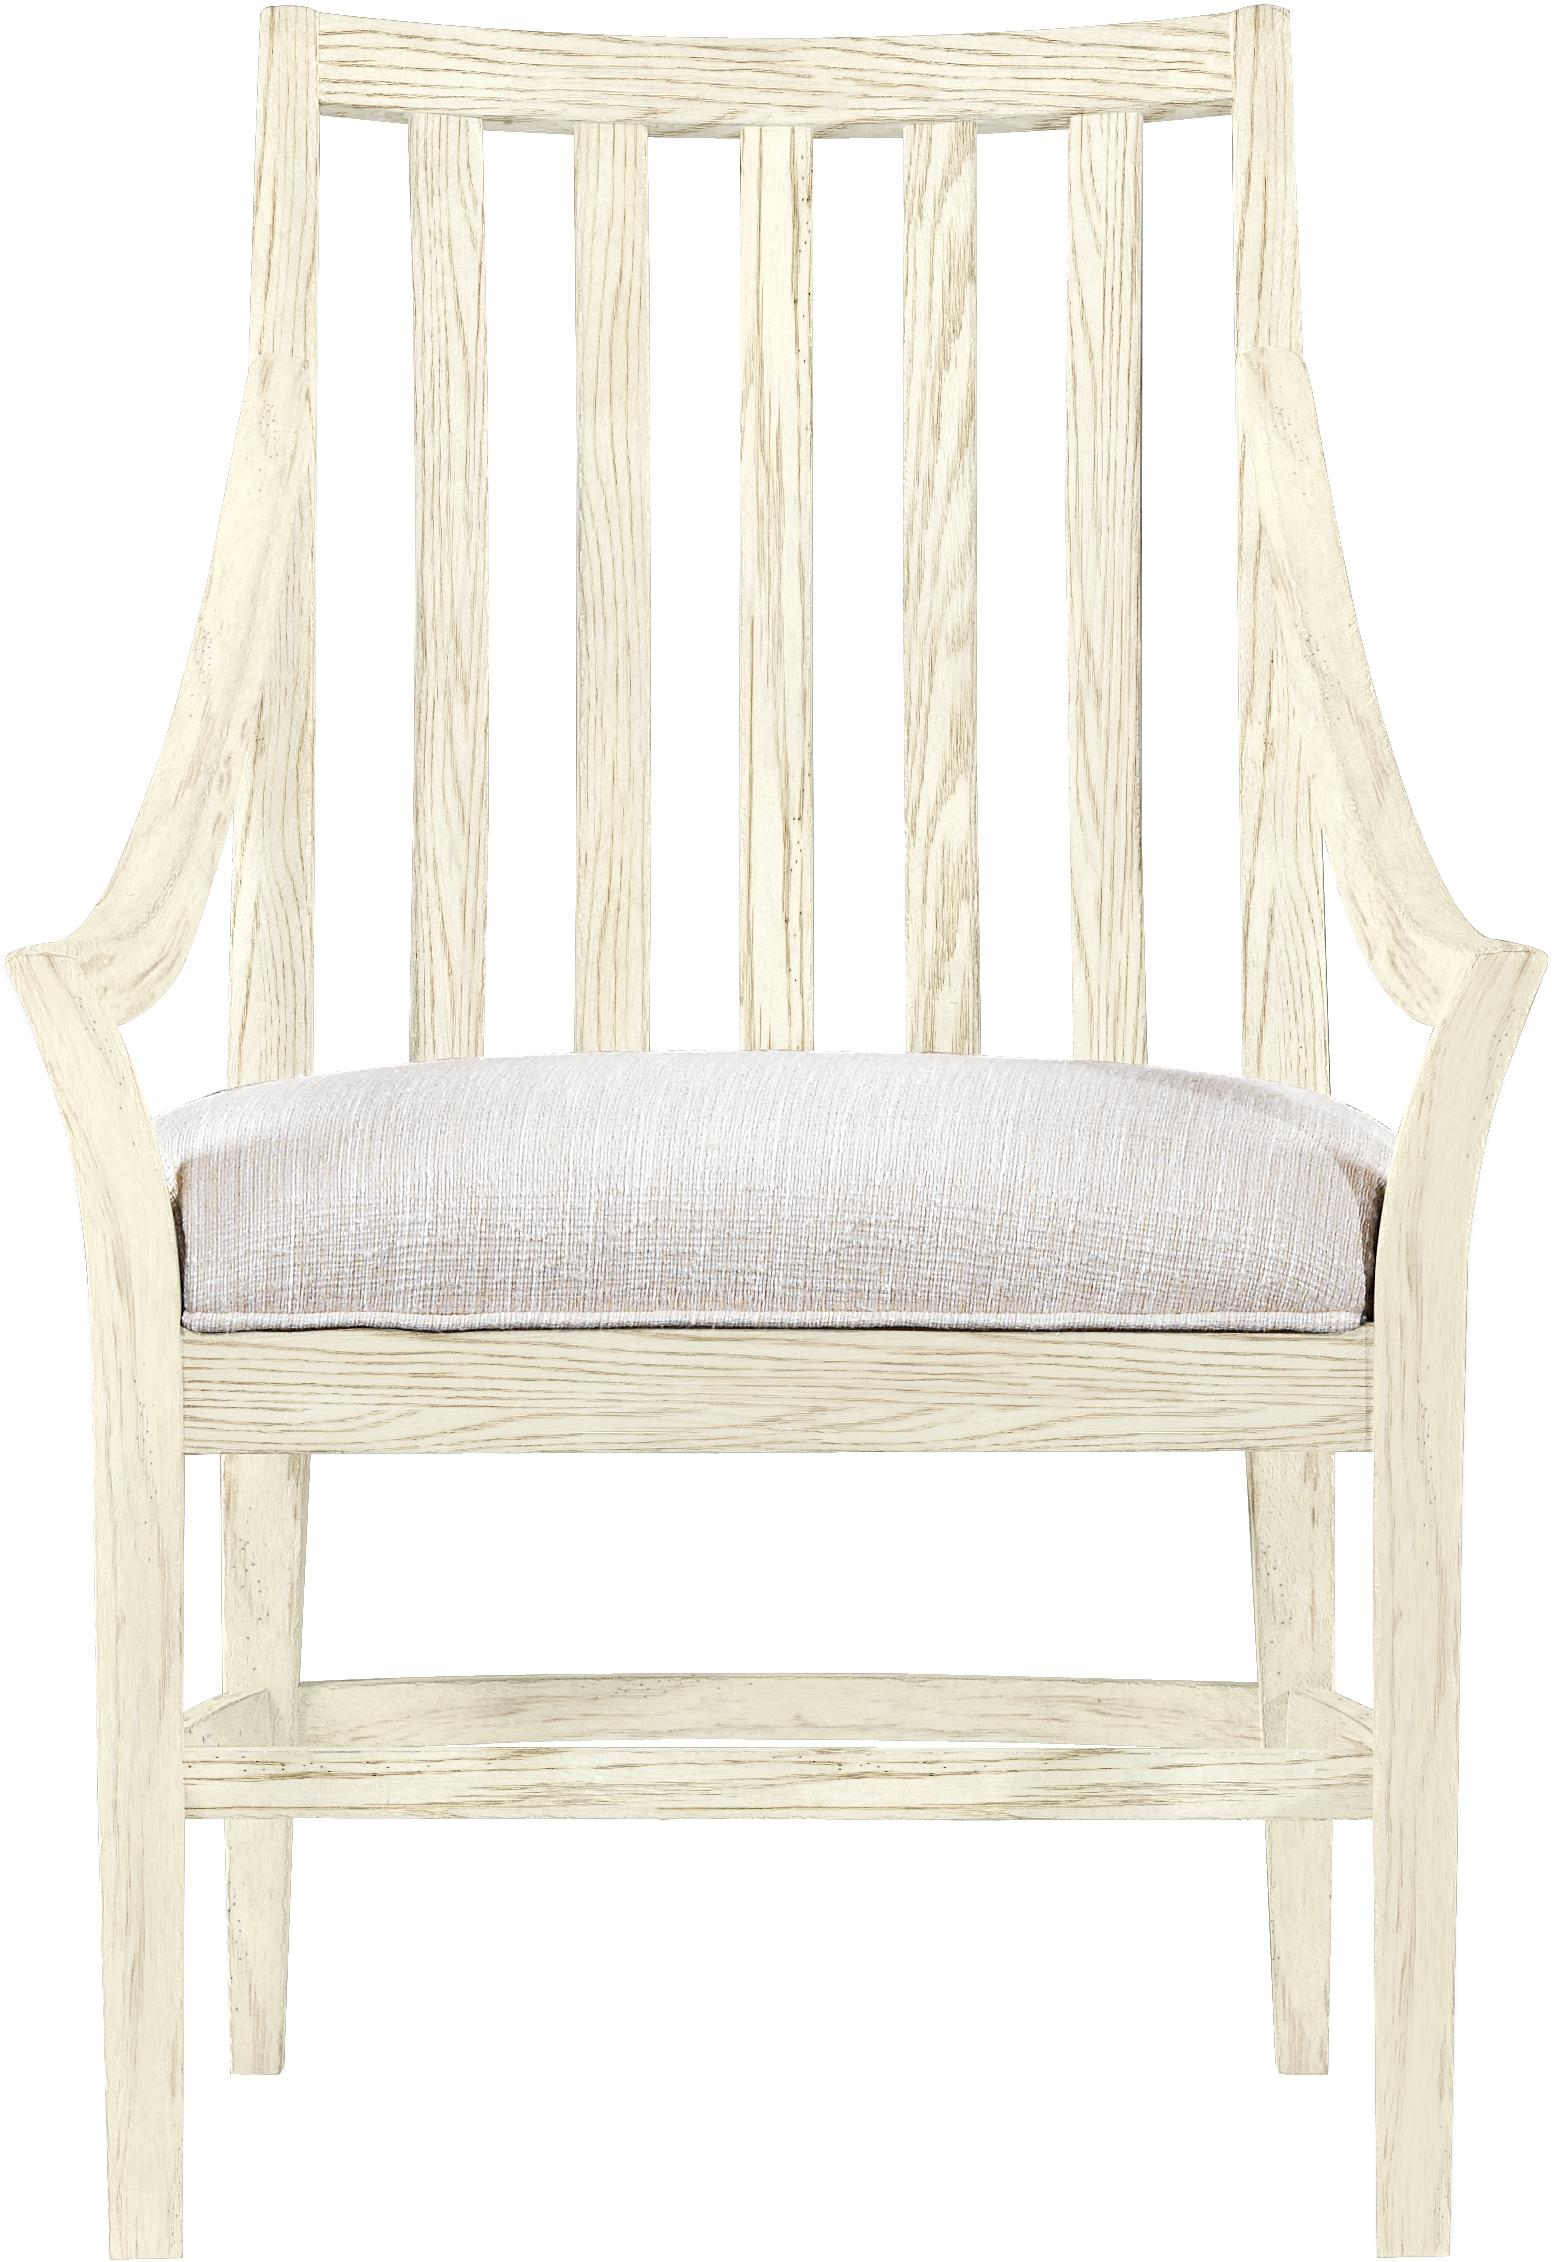 Stanley Furniture Coastal Living Resort By the Bay Dining Chair - Item Number: 062-A1-65